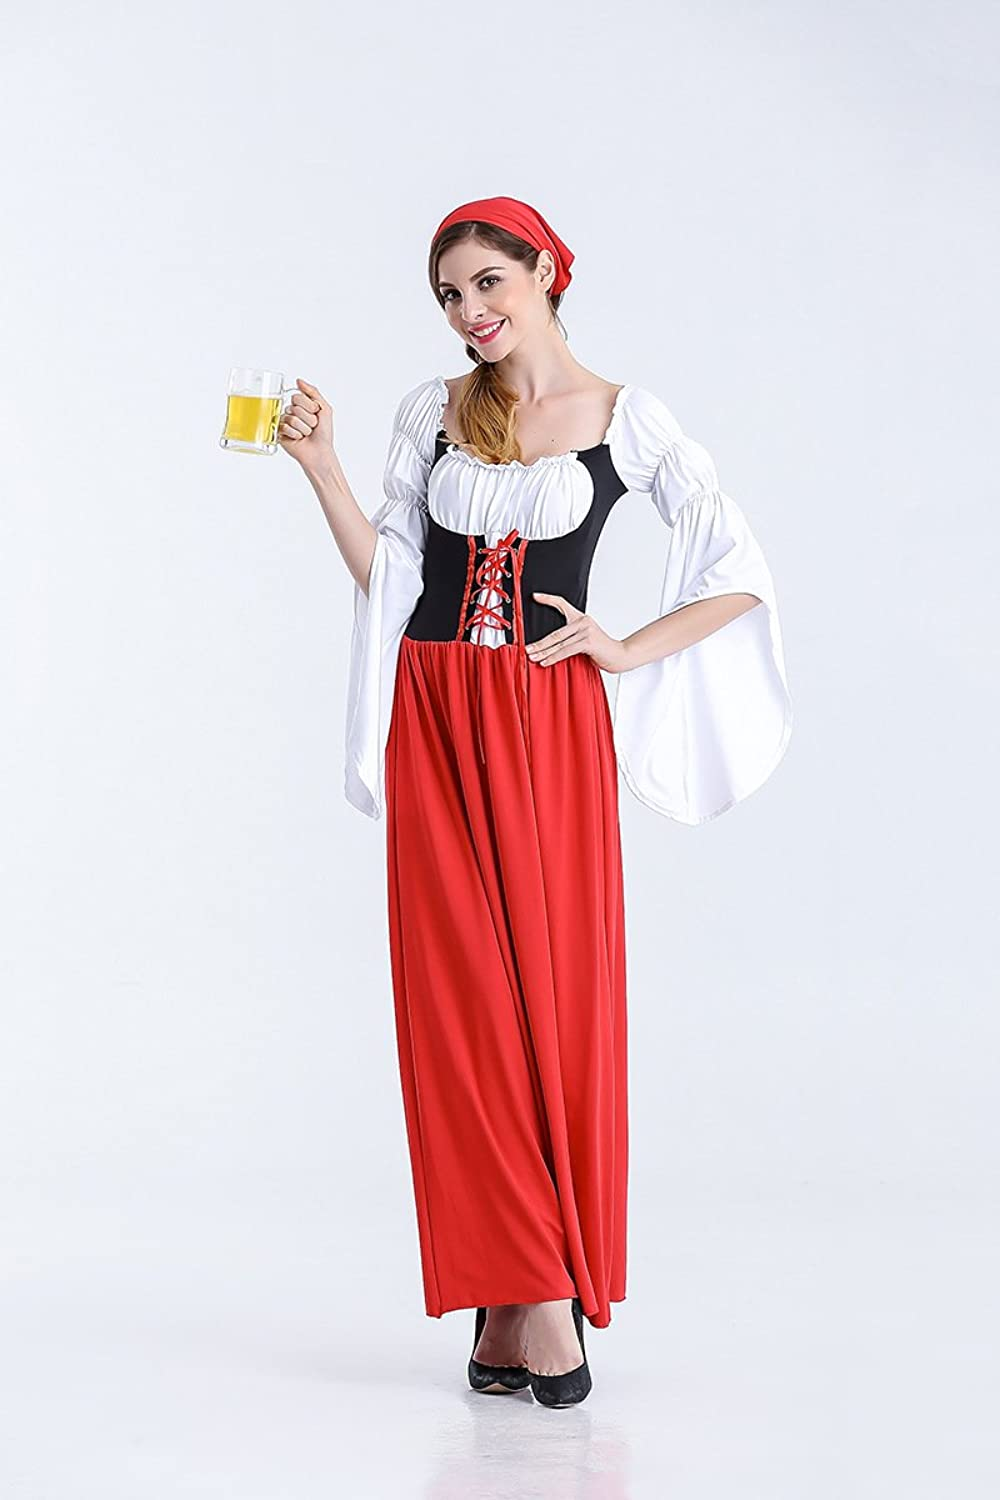 Ruiyue German Oktoberfest Costume Skirt Maid Costume Female Pirate Costume Halloween Beer Clothing for Women